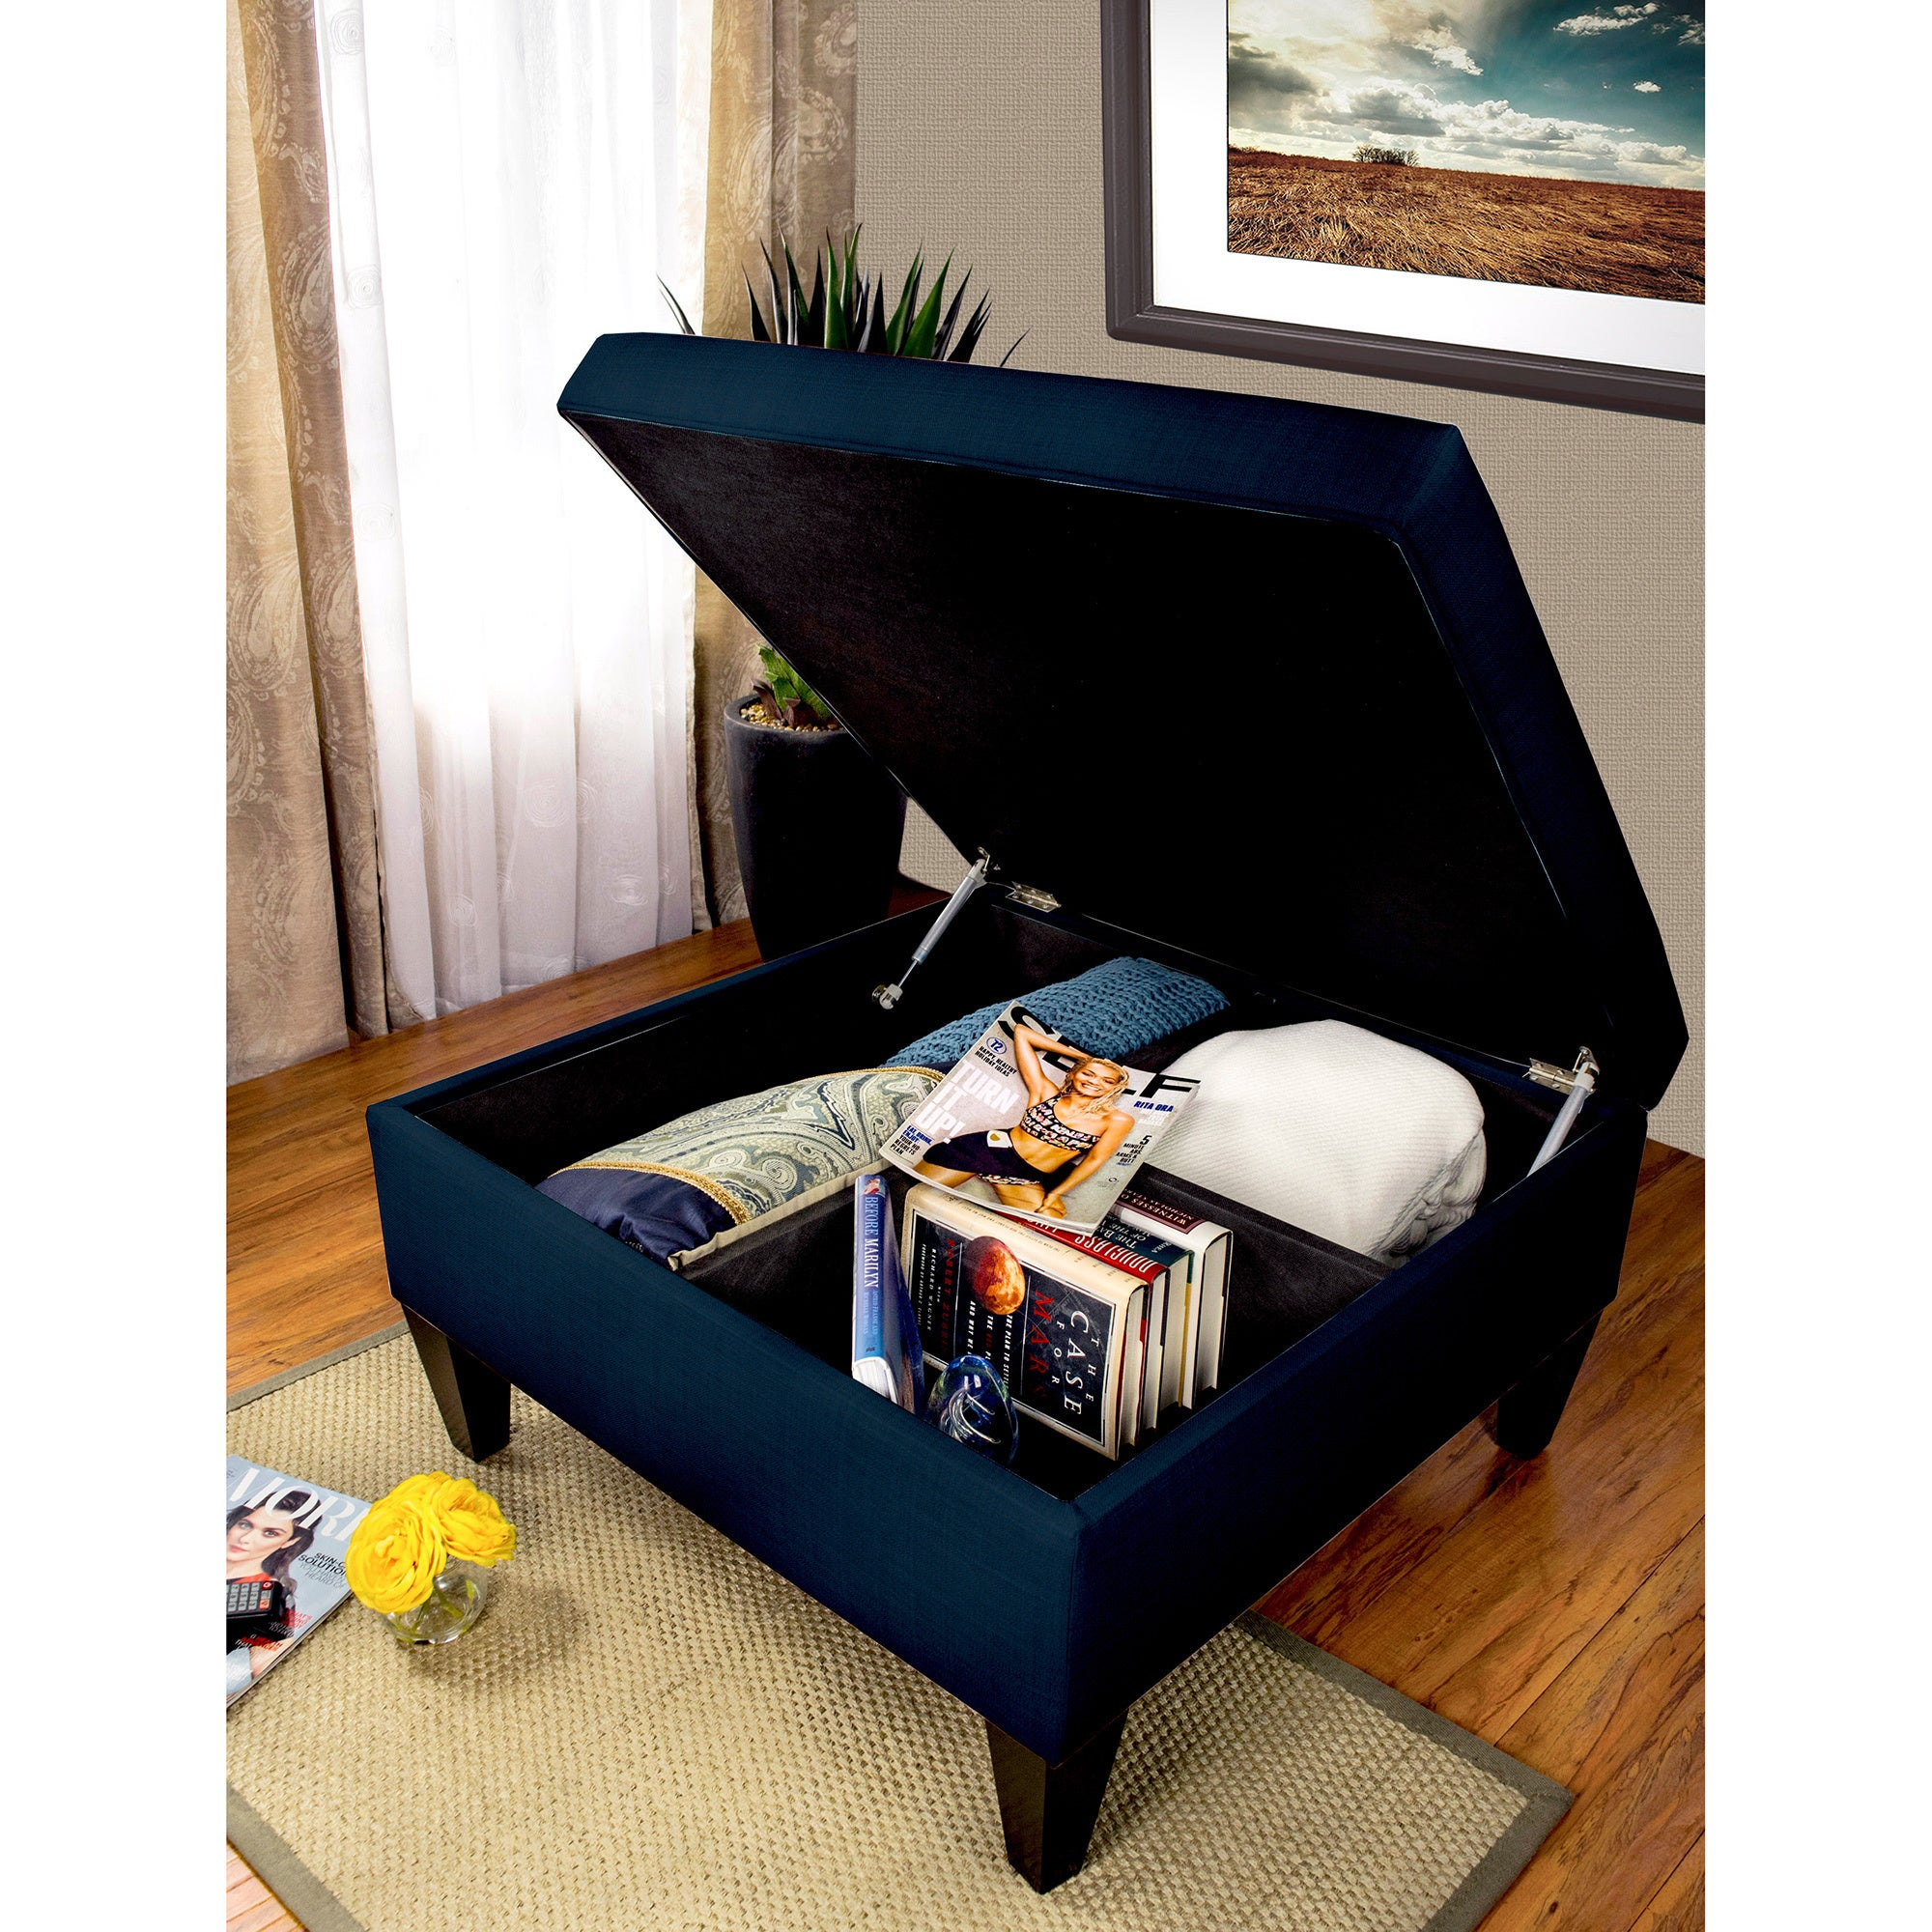 Delicieux Shop MJL Furniture Manhattan DAWSON 7 Espresso Wood/Polyester/Foam  Upholstered Organizational Cocktail Ottoman Table   On Sale   Free Shipping  Today ...